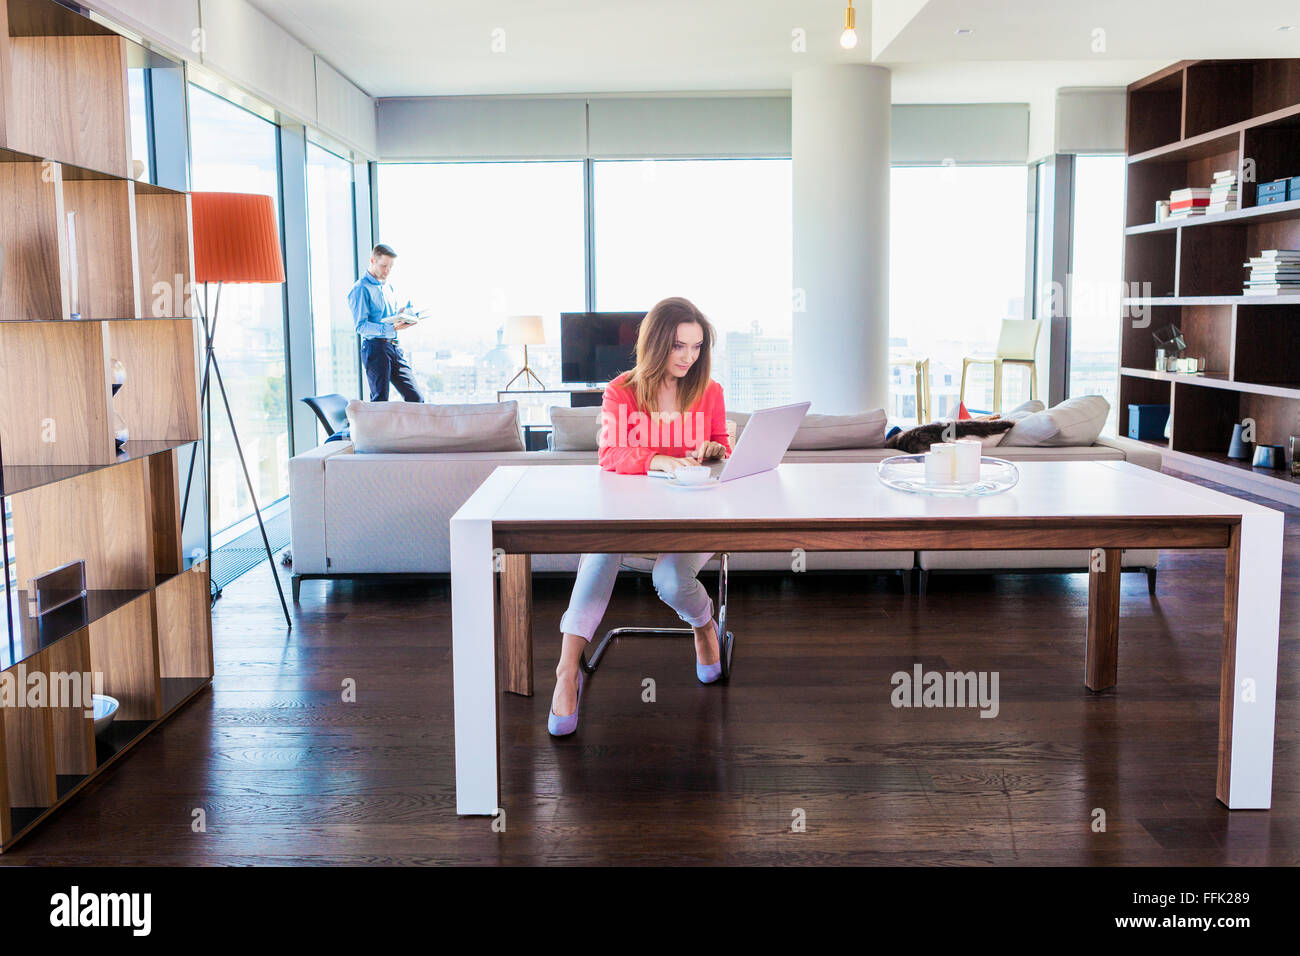 Woman in apartment using laptop with man in background - Stock Image